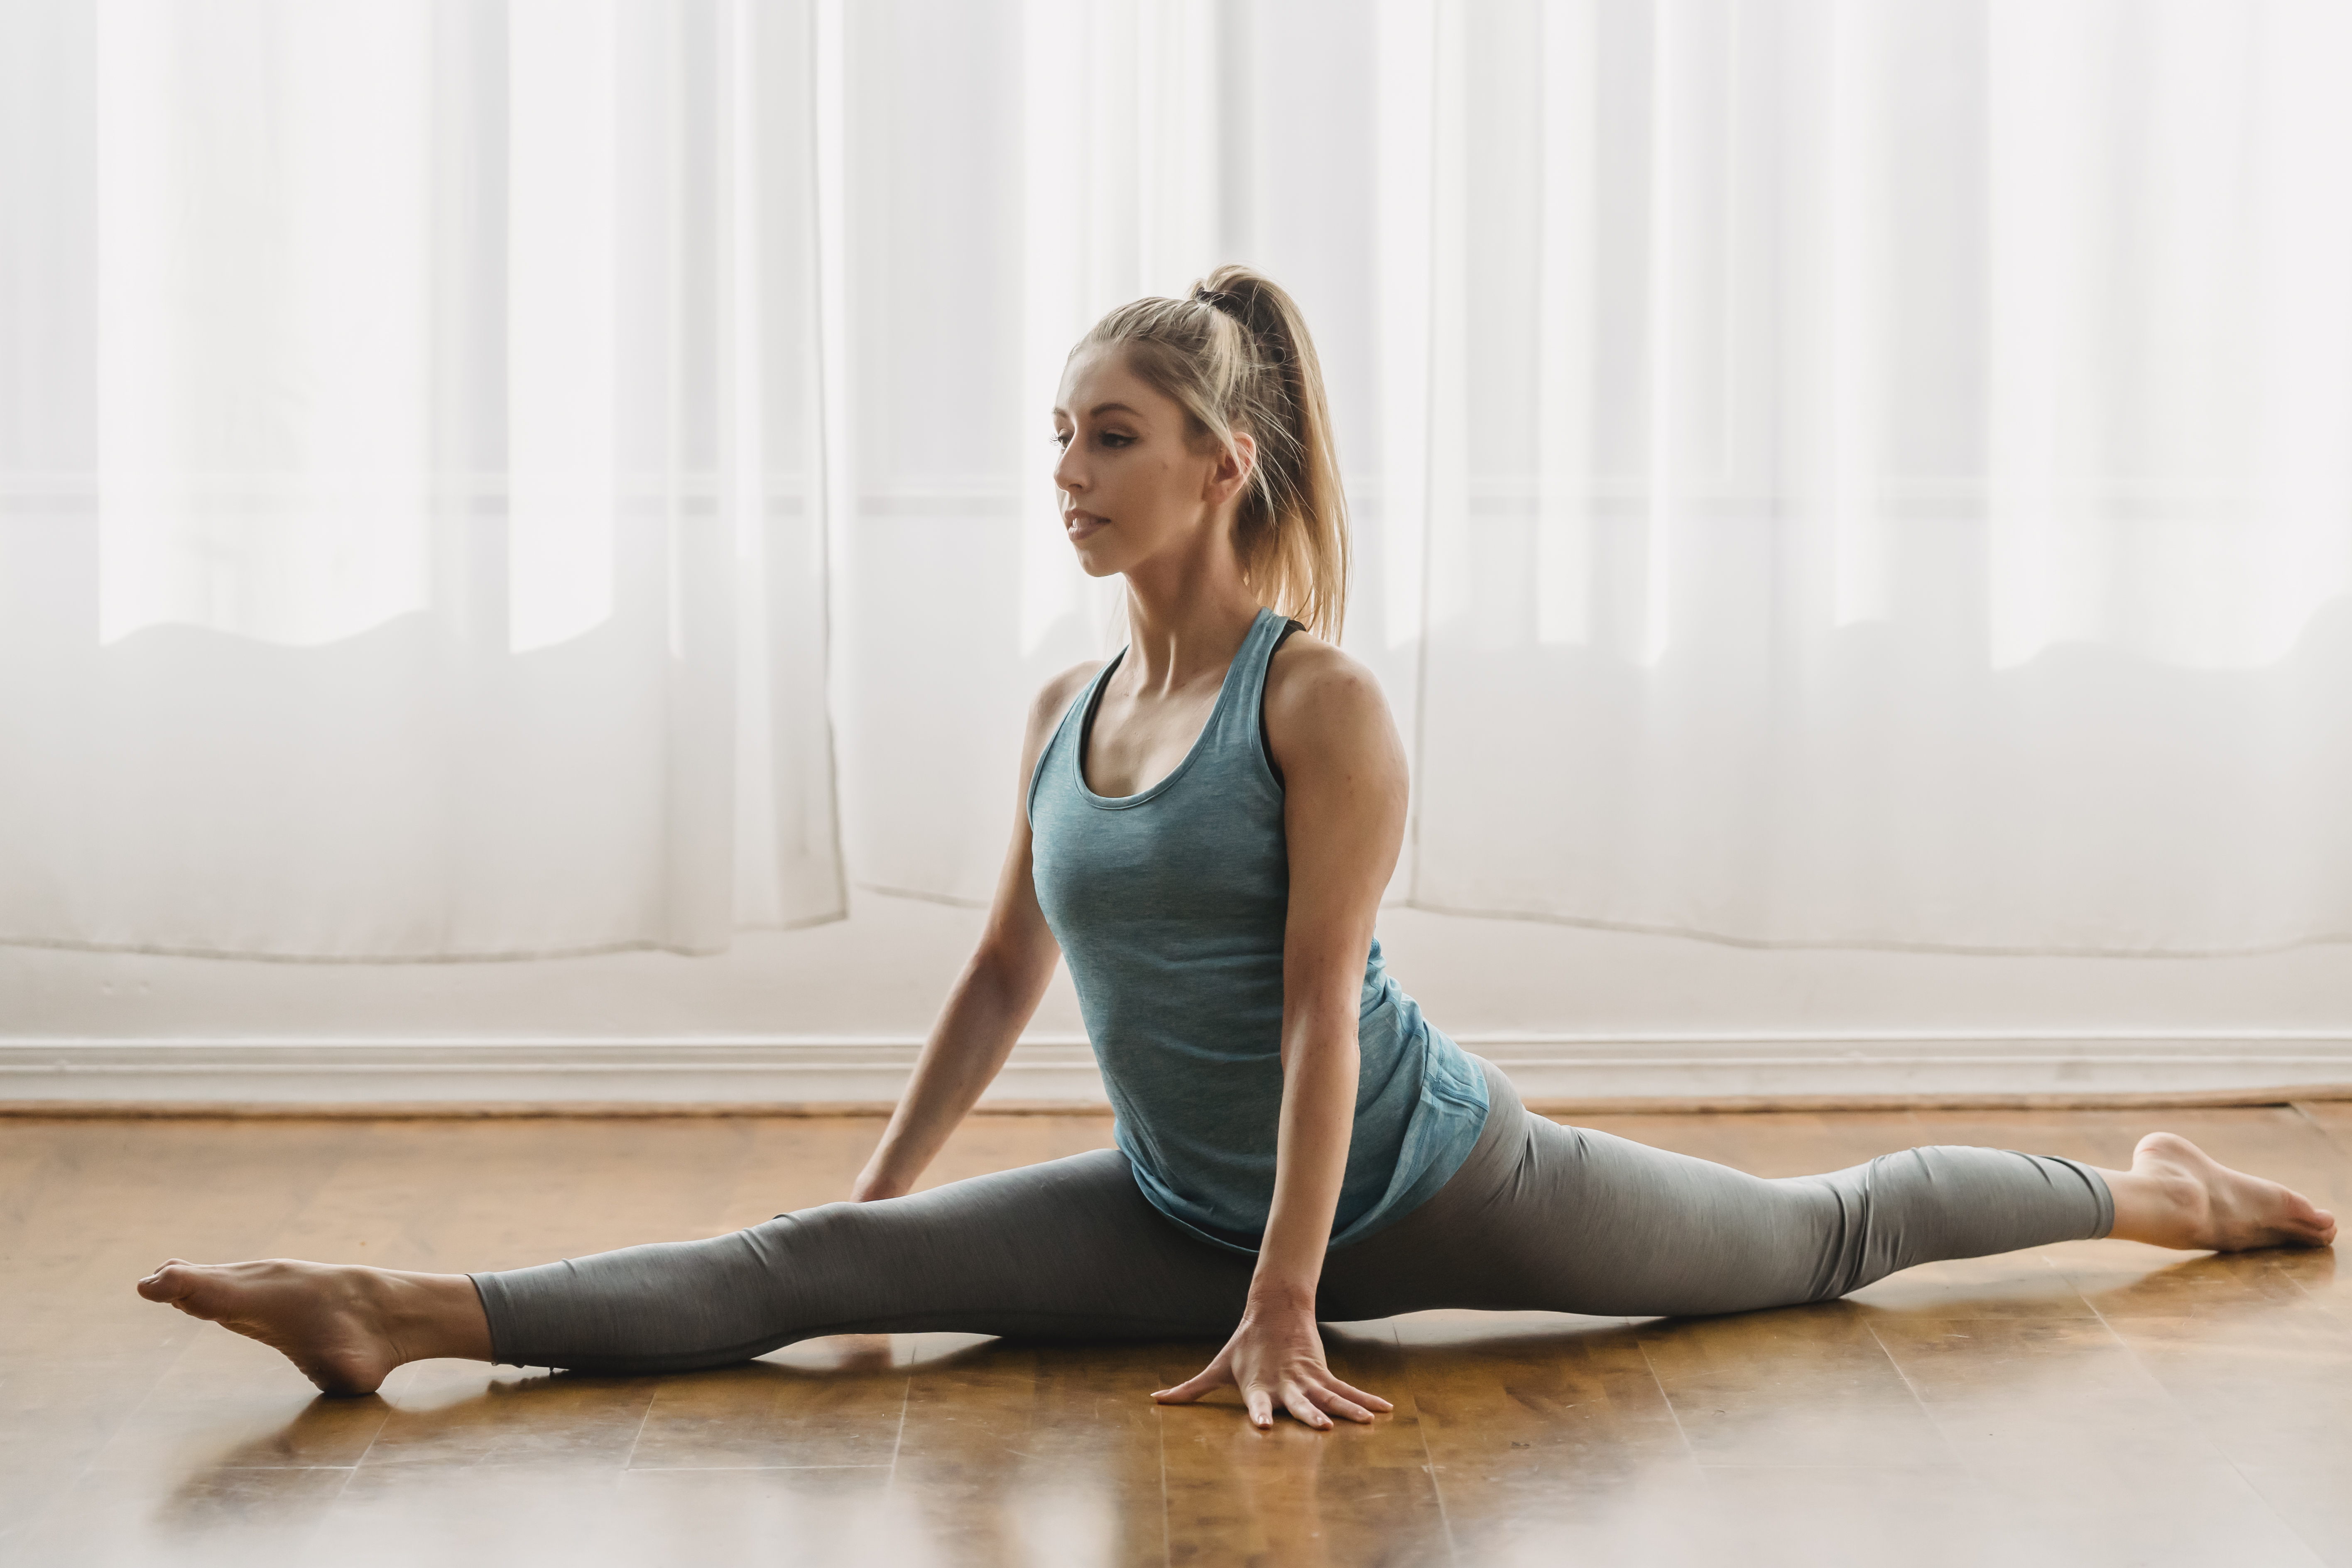 woman stretching on floor near white curtains